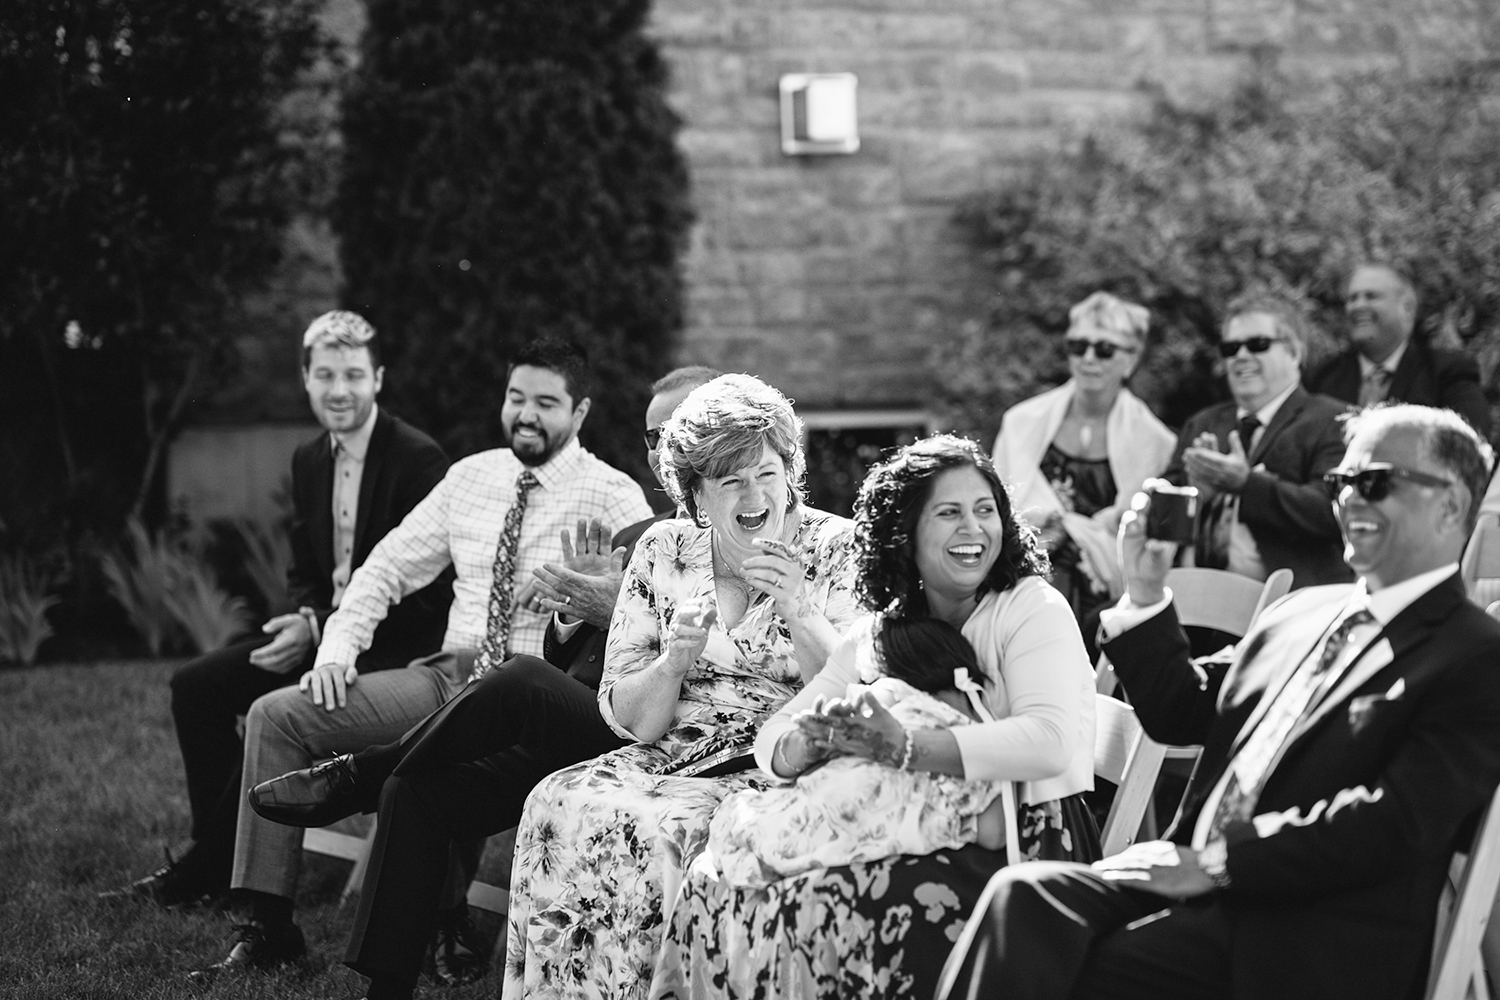 Best-Documentary-photojournalistic-wedding-photographers-Toronto-Ontario-Canada-Rural-Country-House-Backyard-Wedding-Ceremony-Vintage-aesthetic-bride-and-groom-just-married-baby-surprise-news-parents-laughing-at-grandparents-reaction.jpg